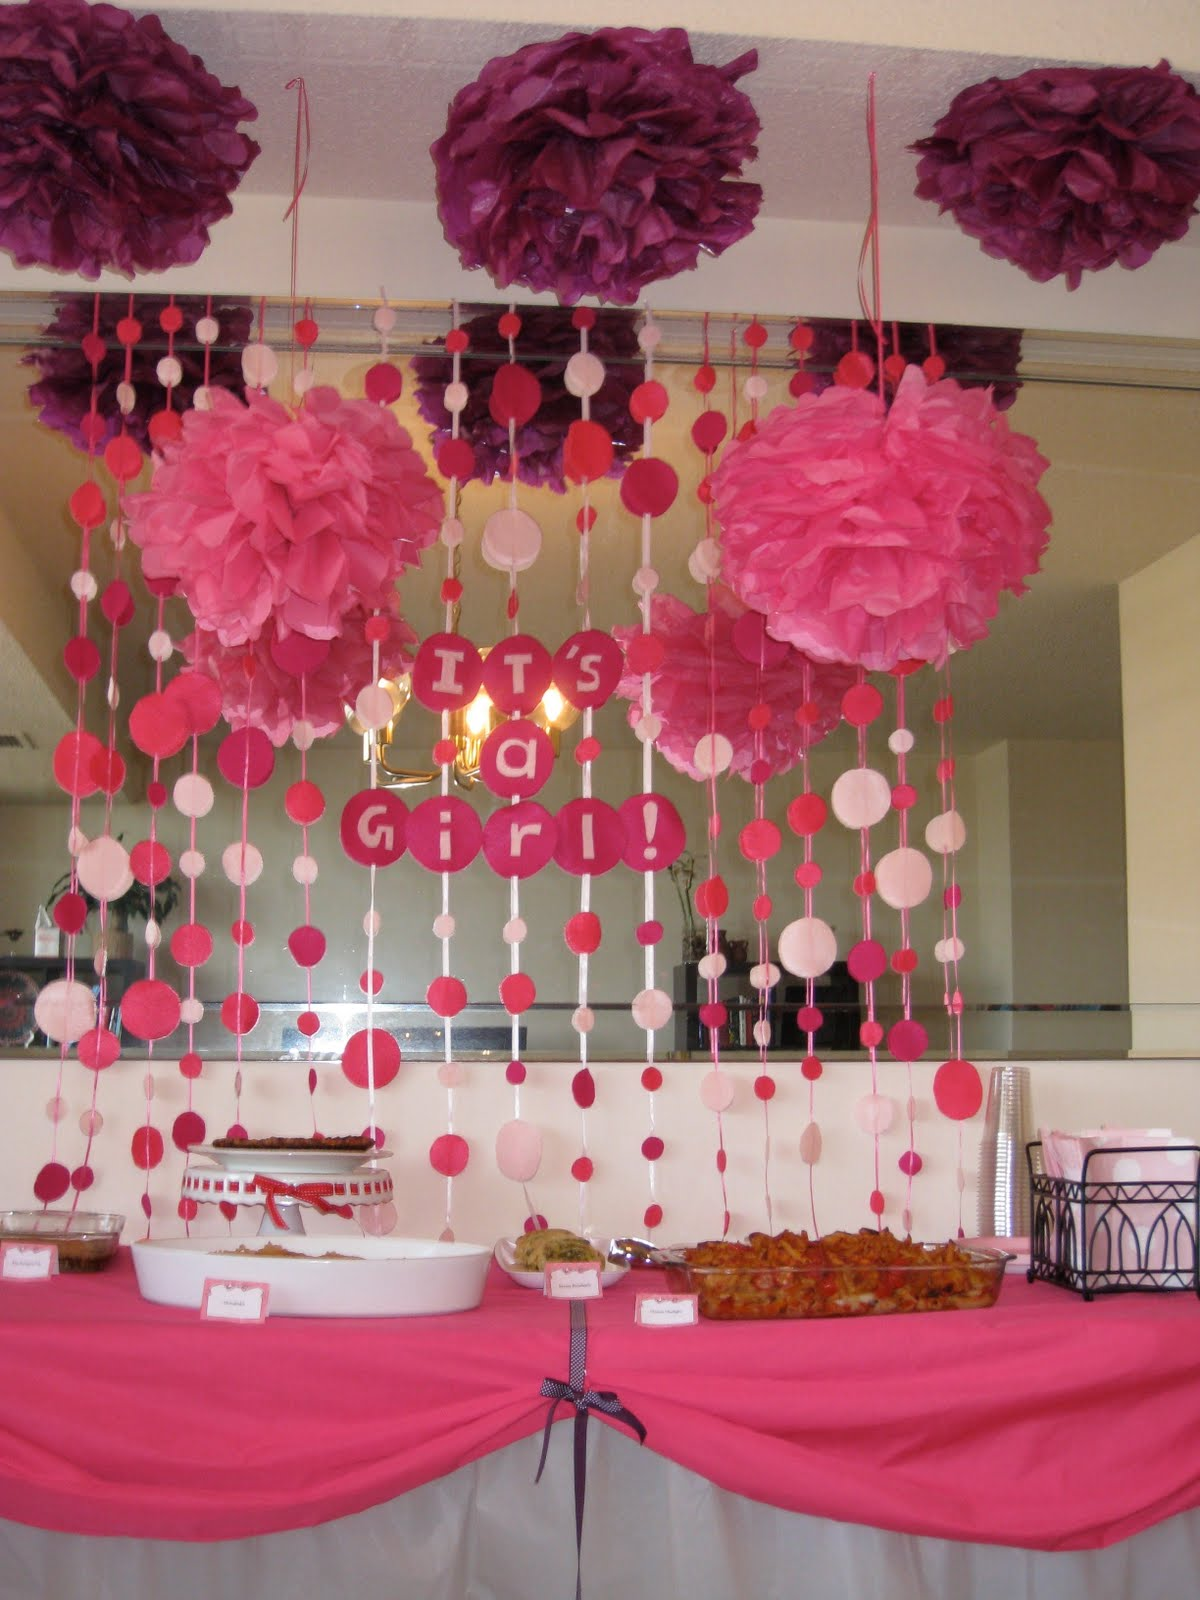 Baby shower food ideas baby shower ideas for a girl for Baby shower decoration images